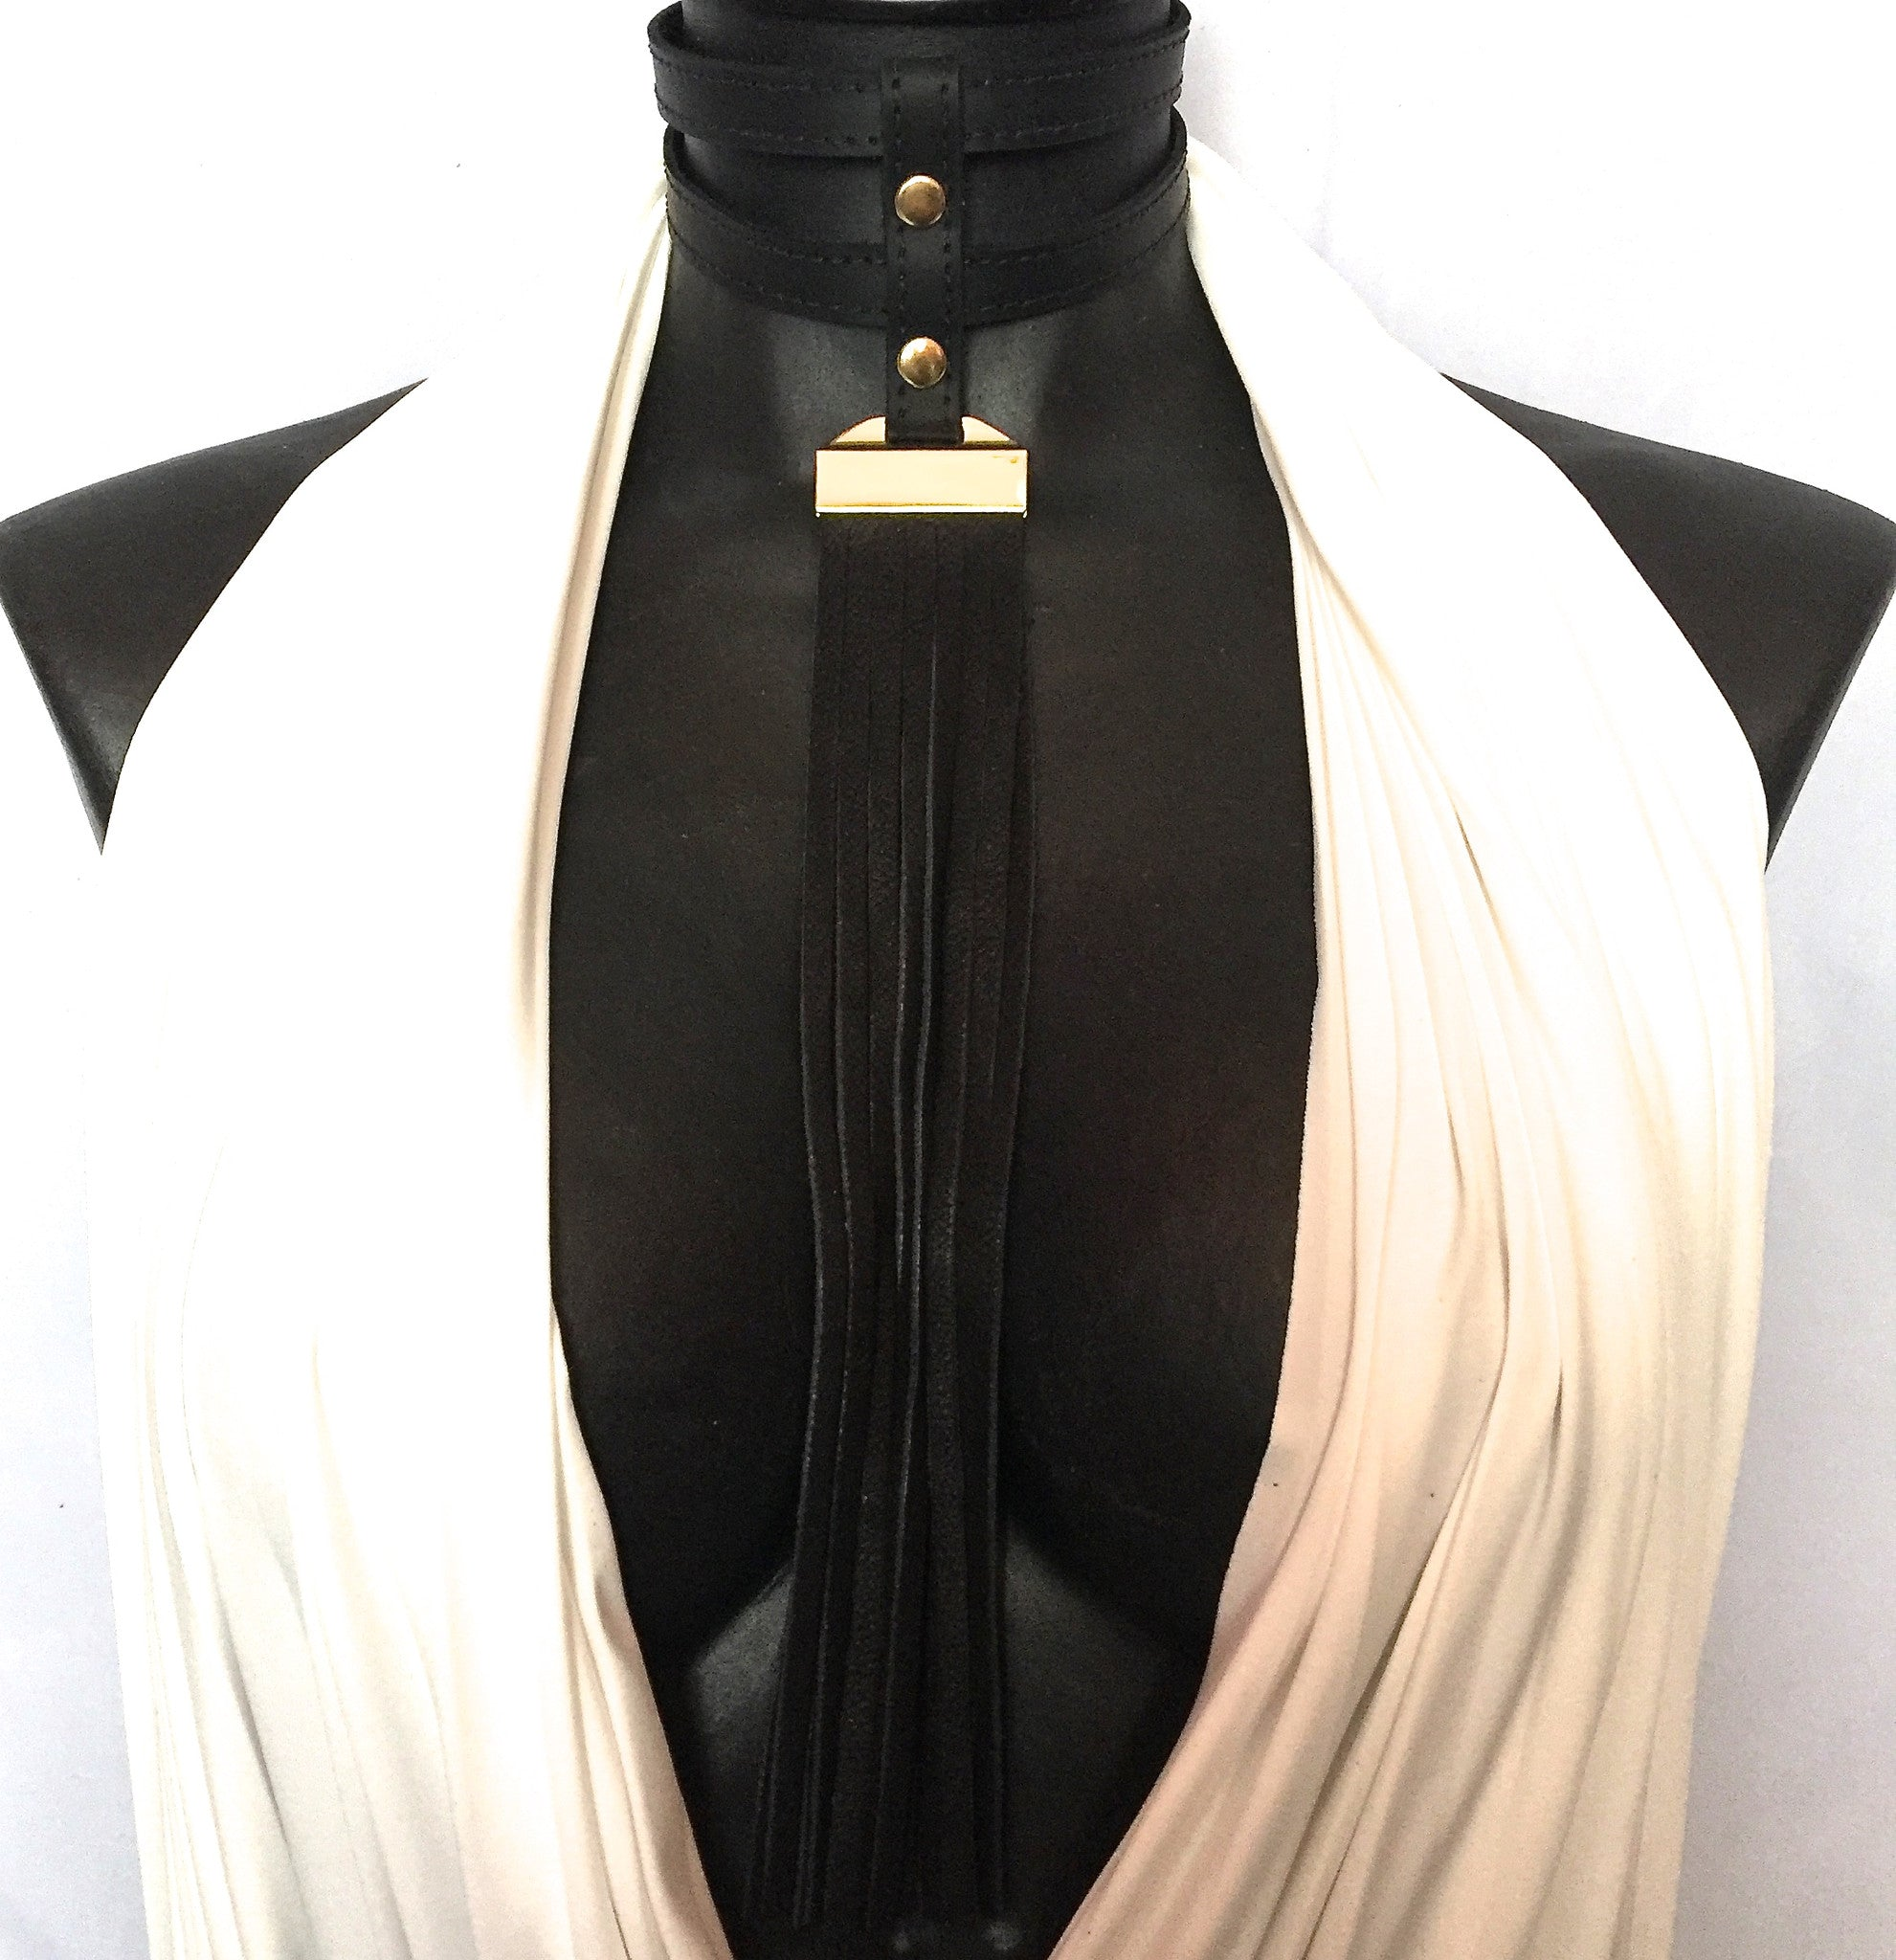 DOUBLE LEATHER CHOKER NECKLACE WITH LONG DEERSKIN LEATHER FRINGE by nyet jewelry